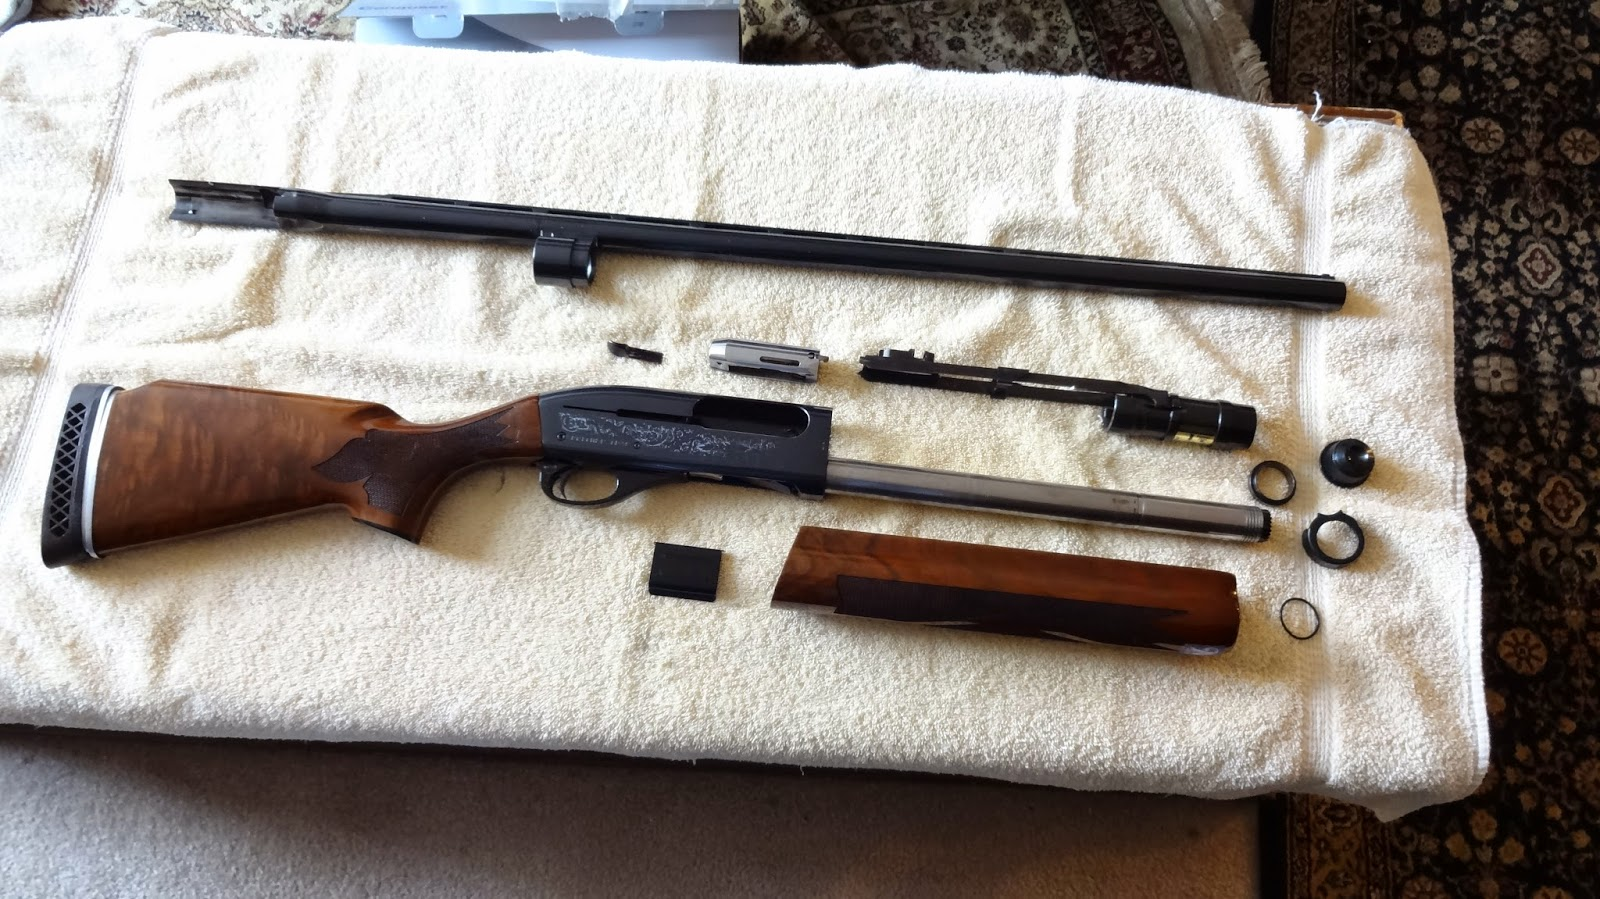 The Order of The Wrench: How To Clean a Remington 1100/11-87